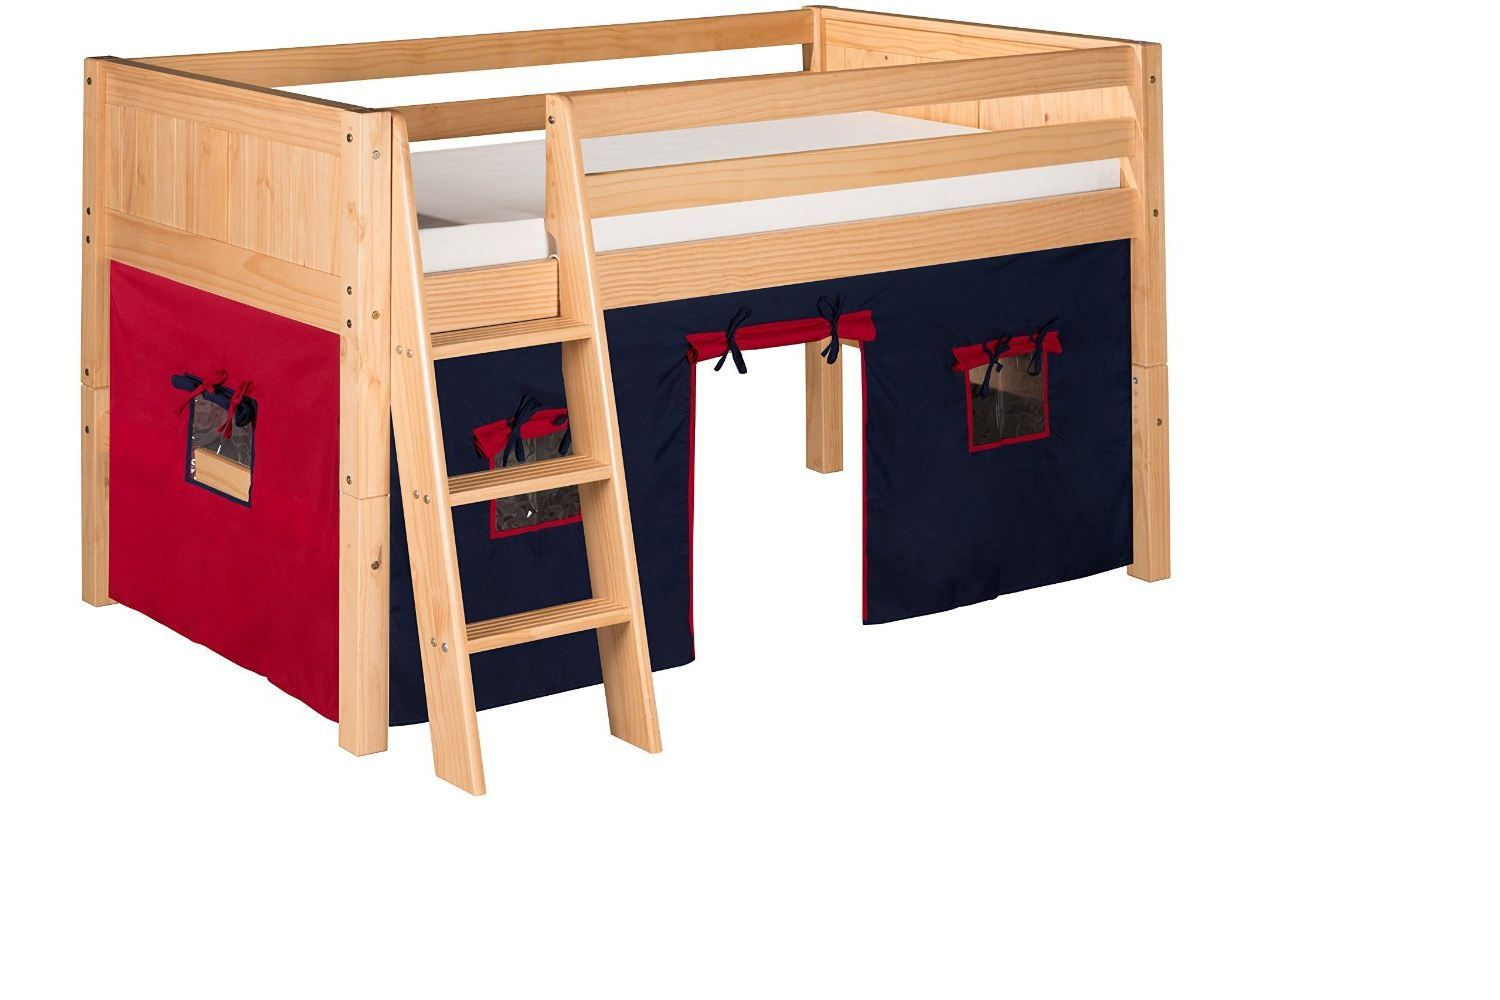 Camaflexi Panel Style Low Solid Wood Loft Bed with Fabric Playhouse Twin Side…